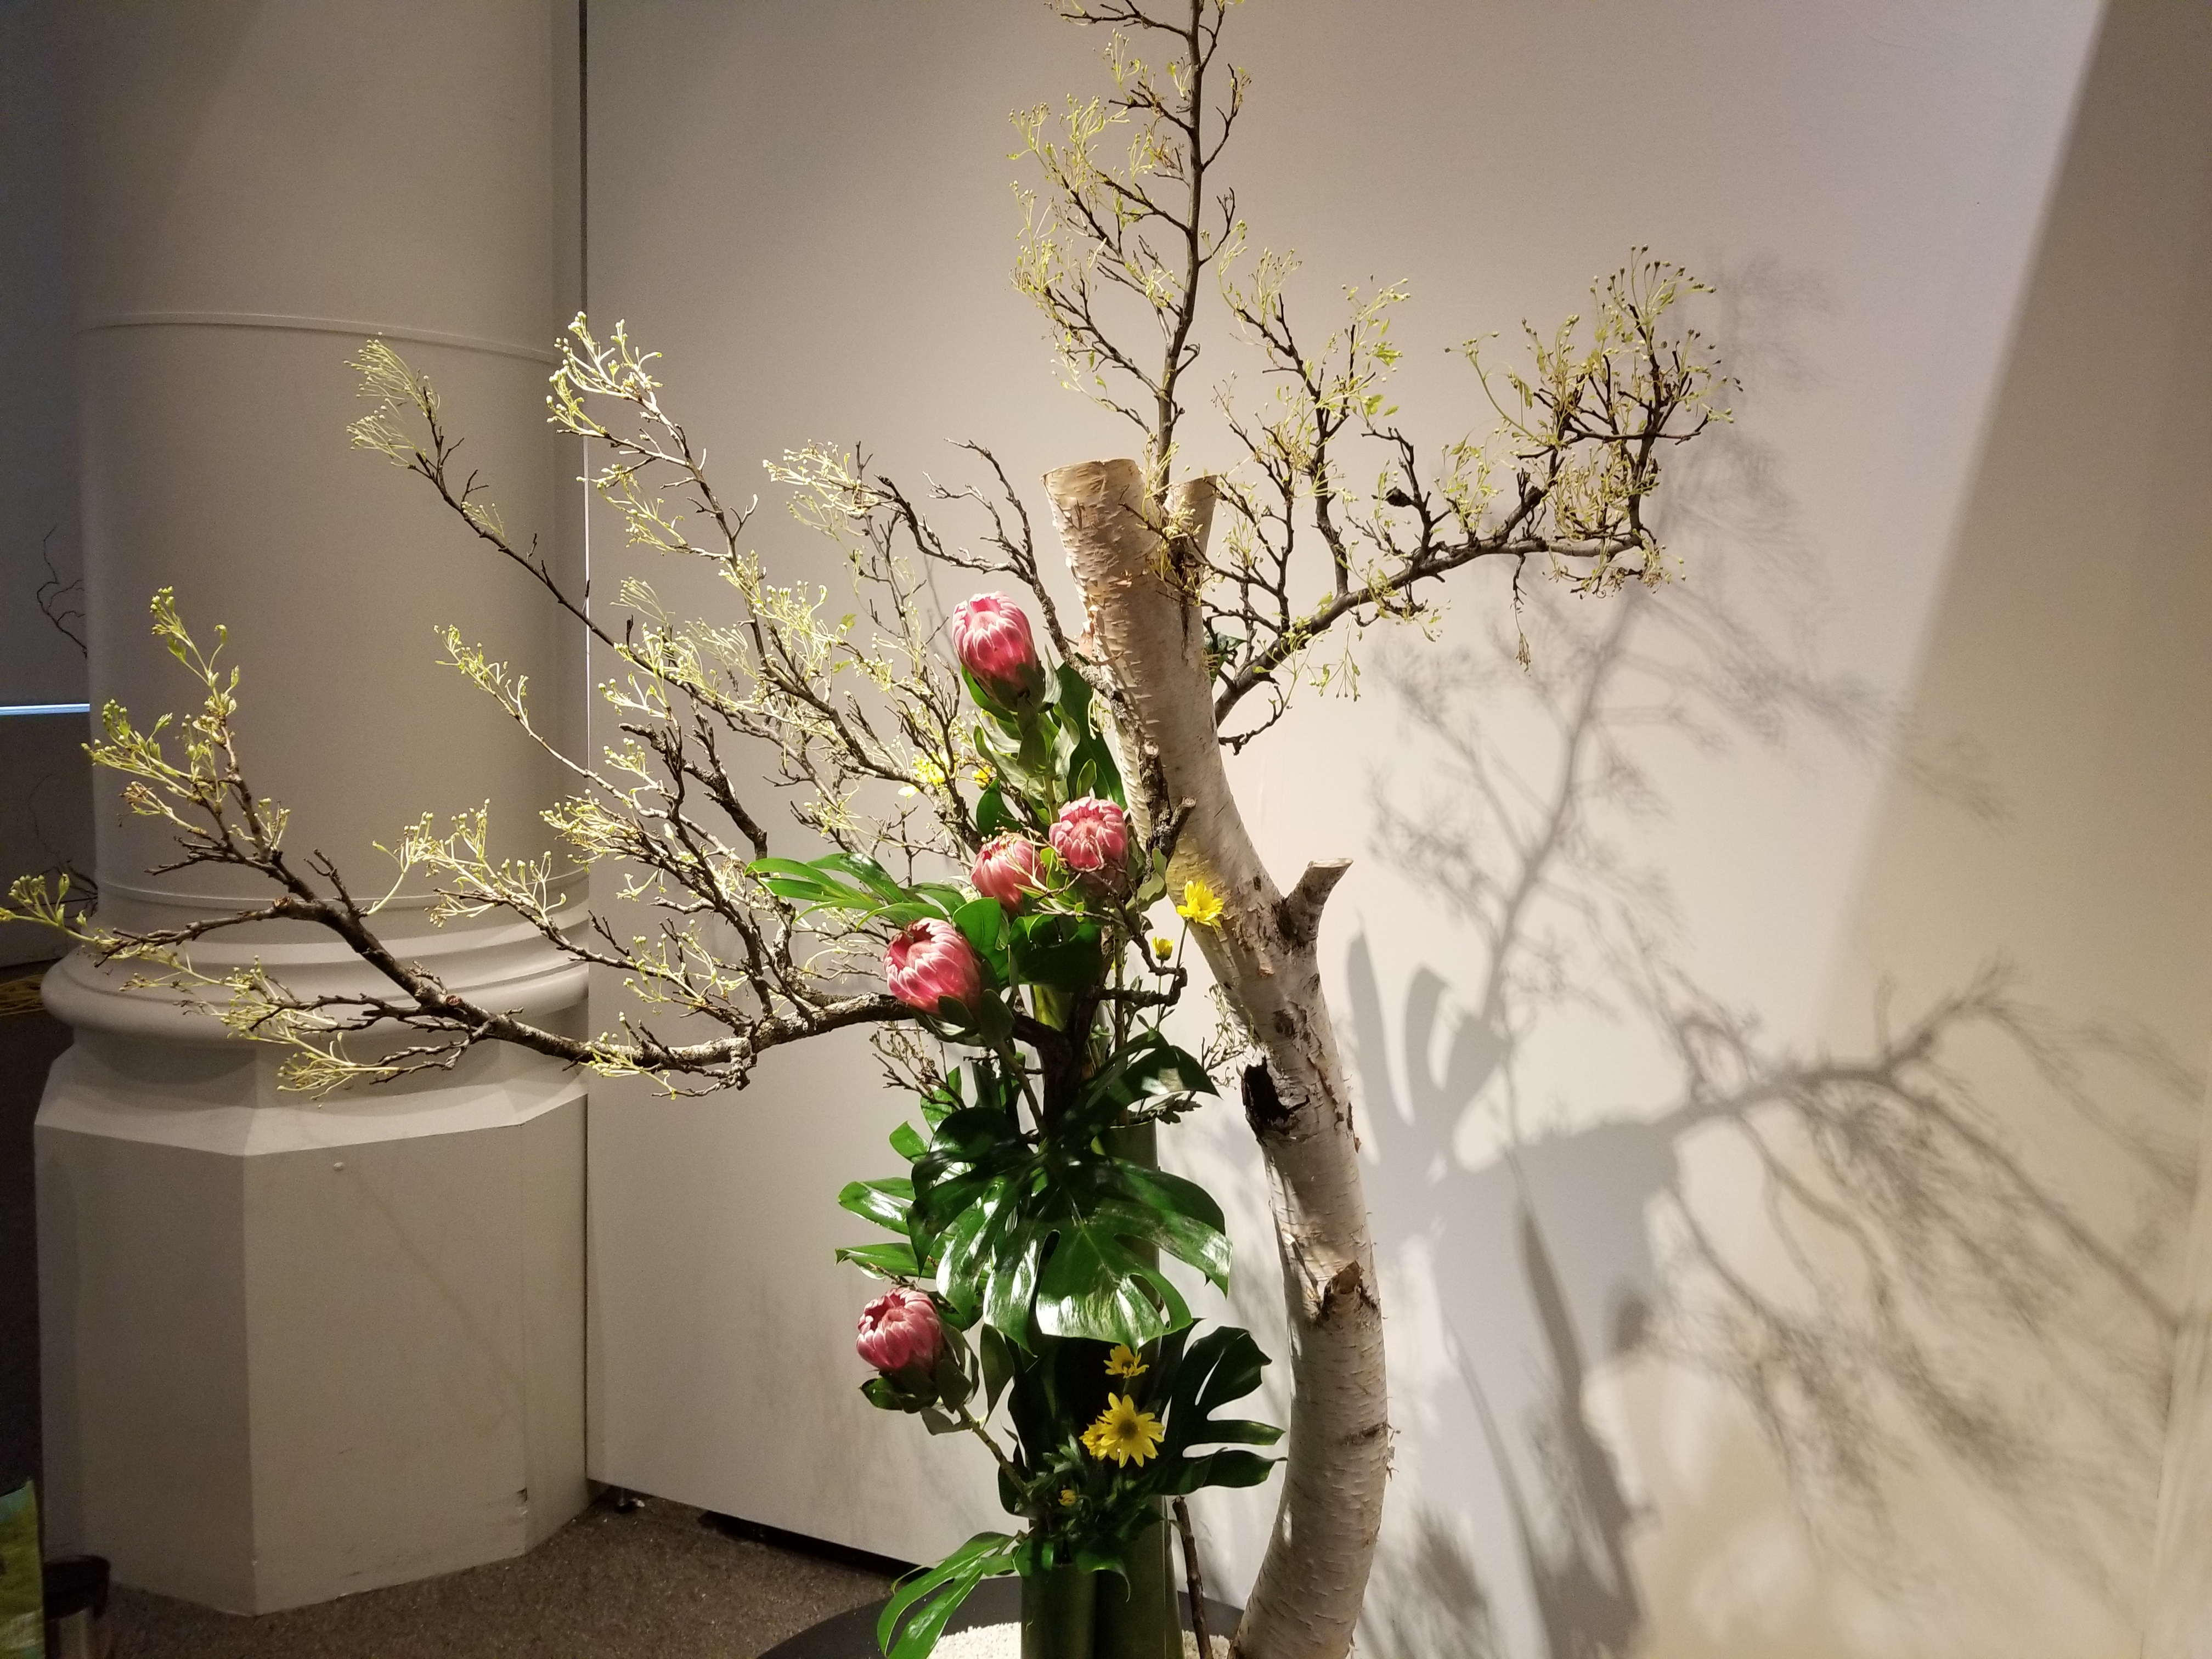 L Ikebana Pas À Pas japanese flower art heralds spring at museum – rci | english